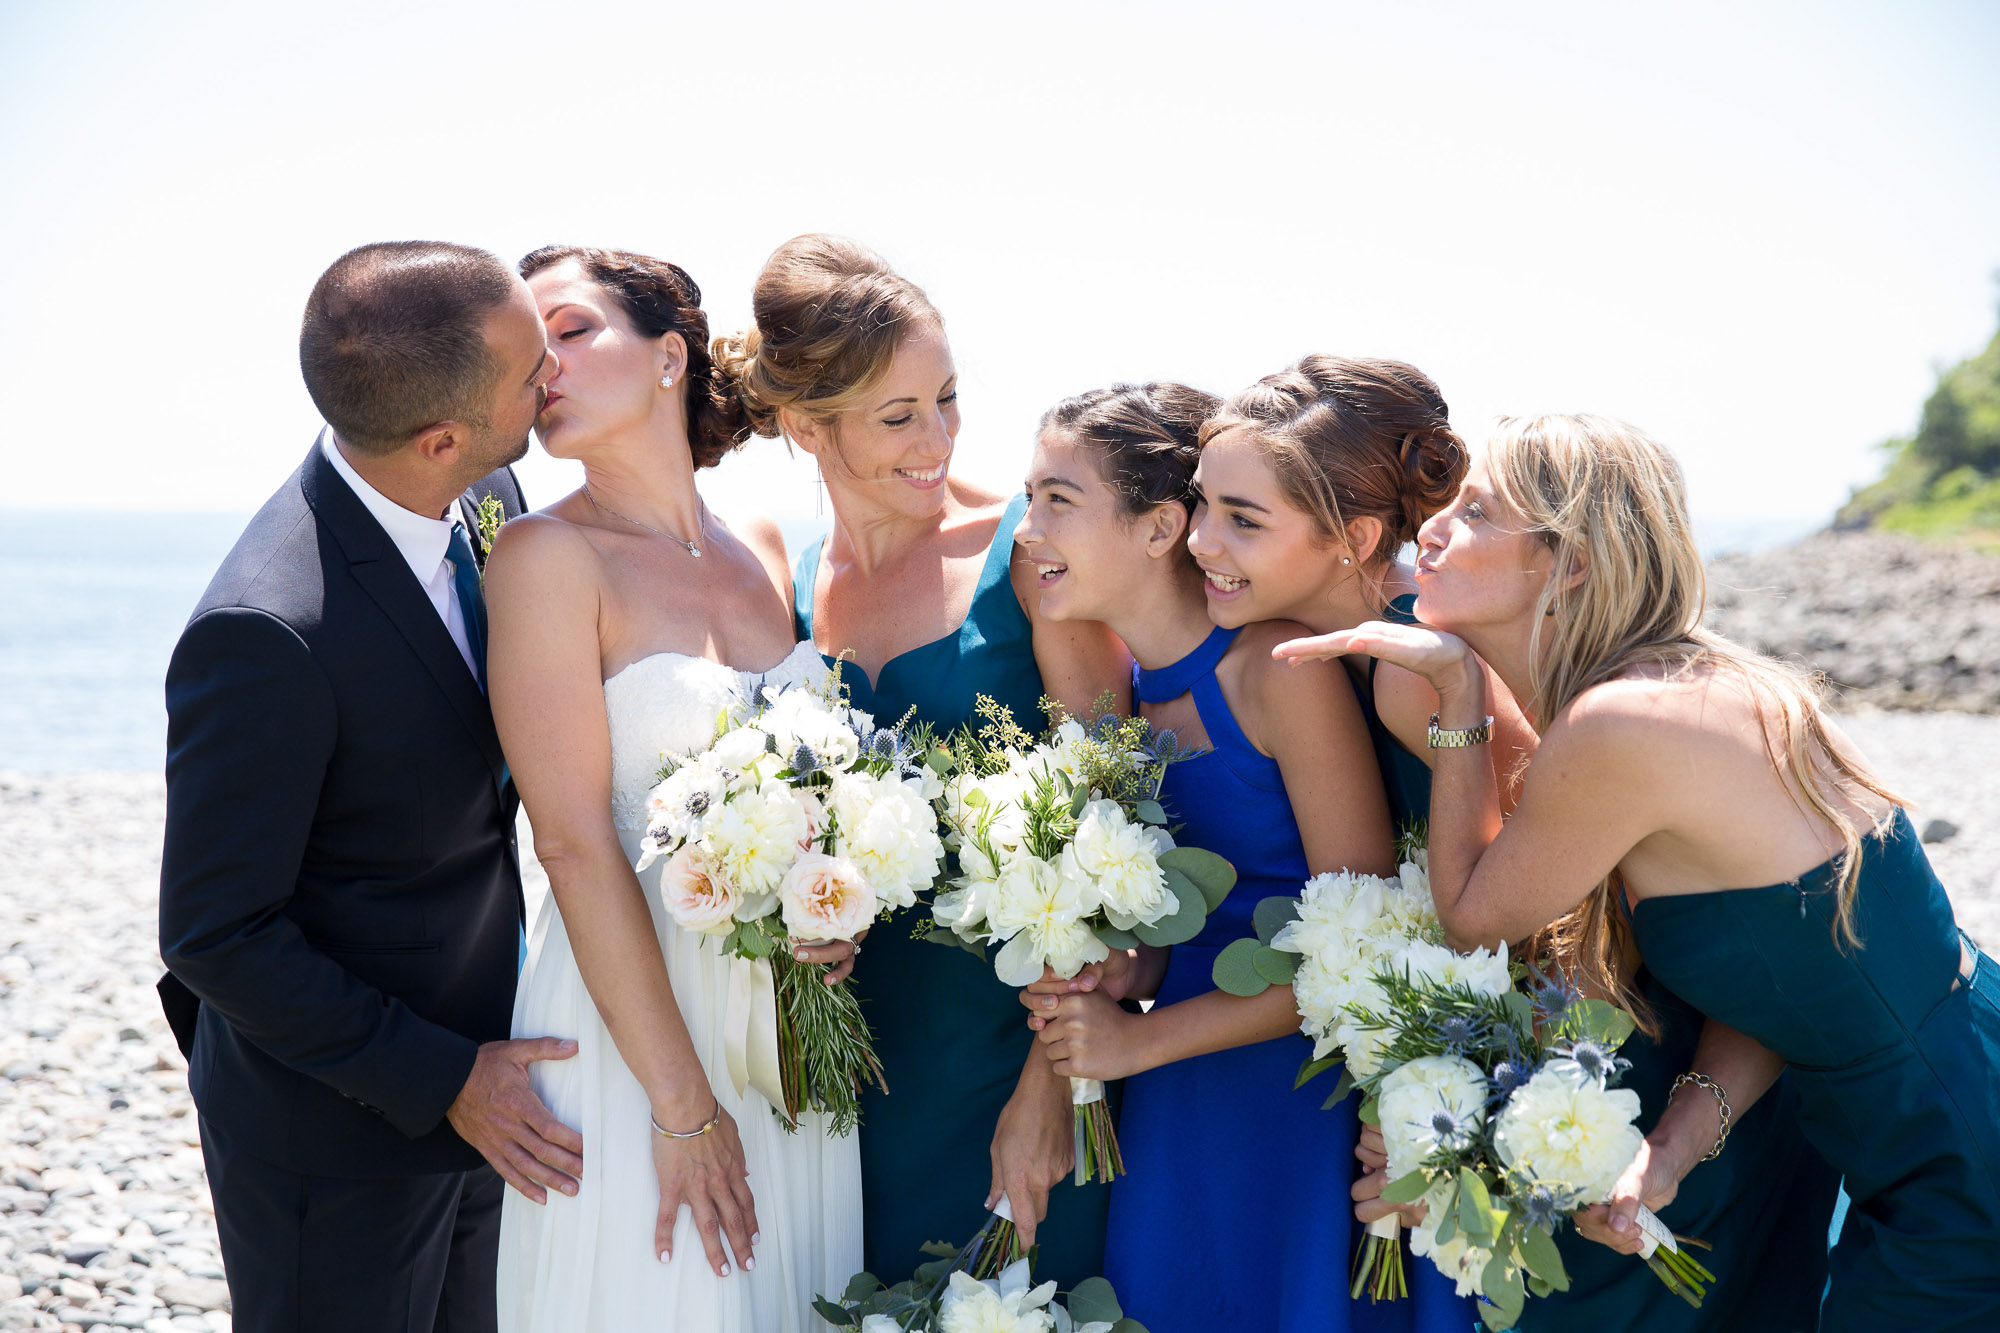 boston-wedding-photographer-26-north-studios-bridal-party.jpg